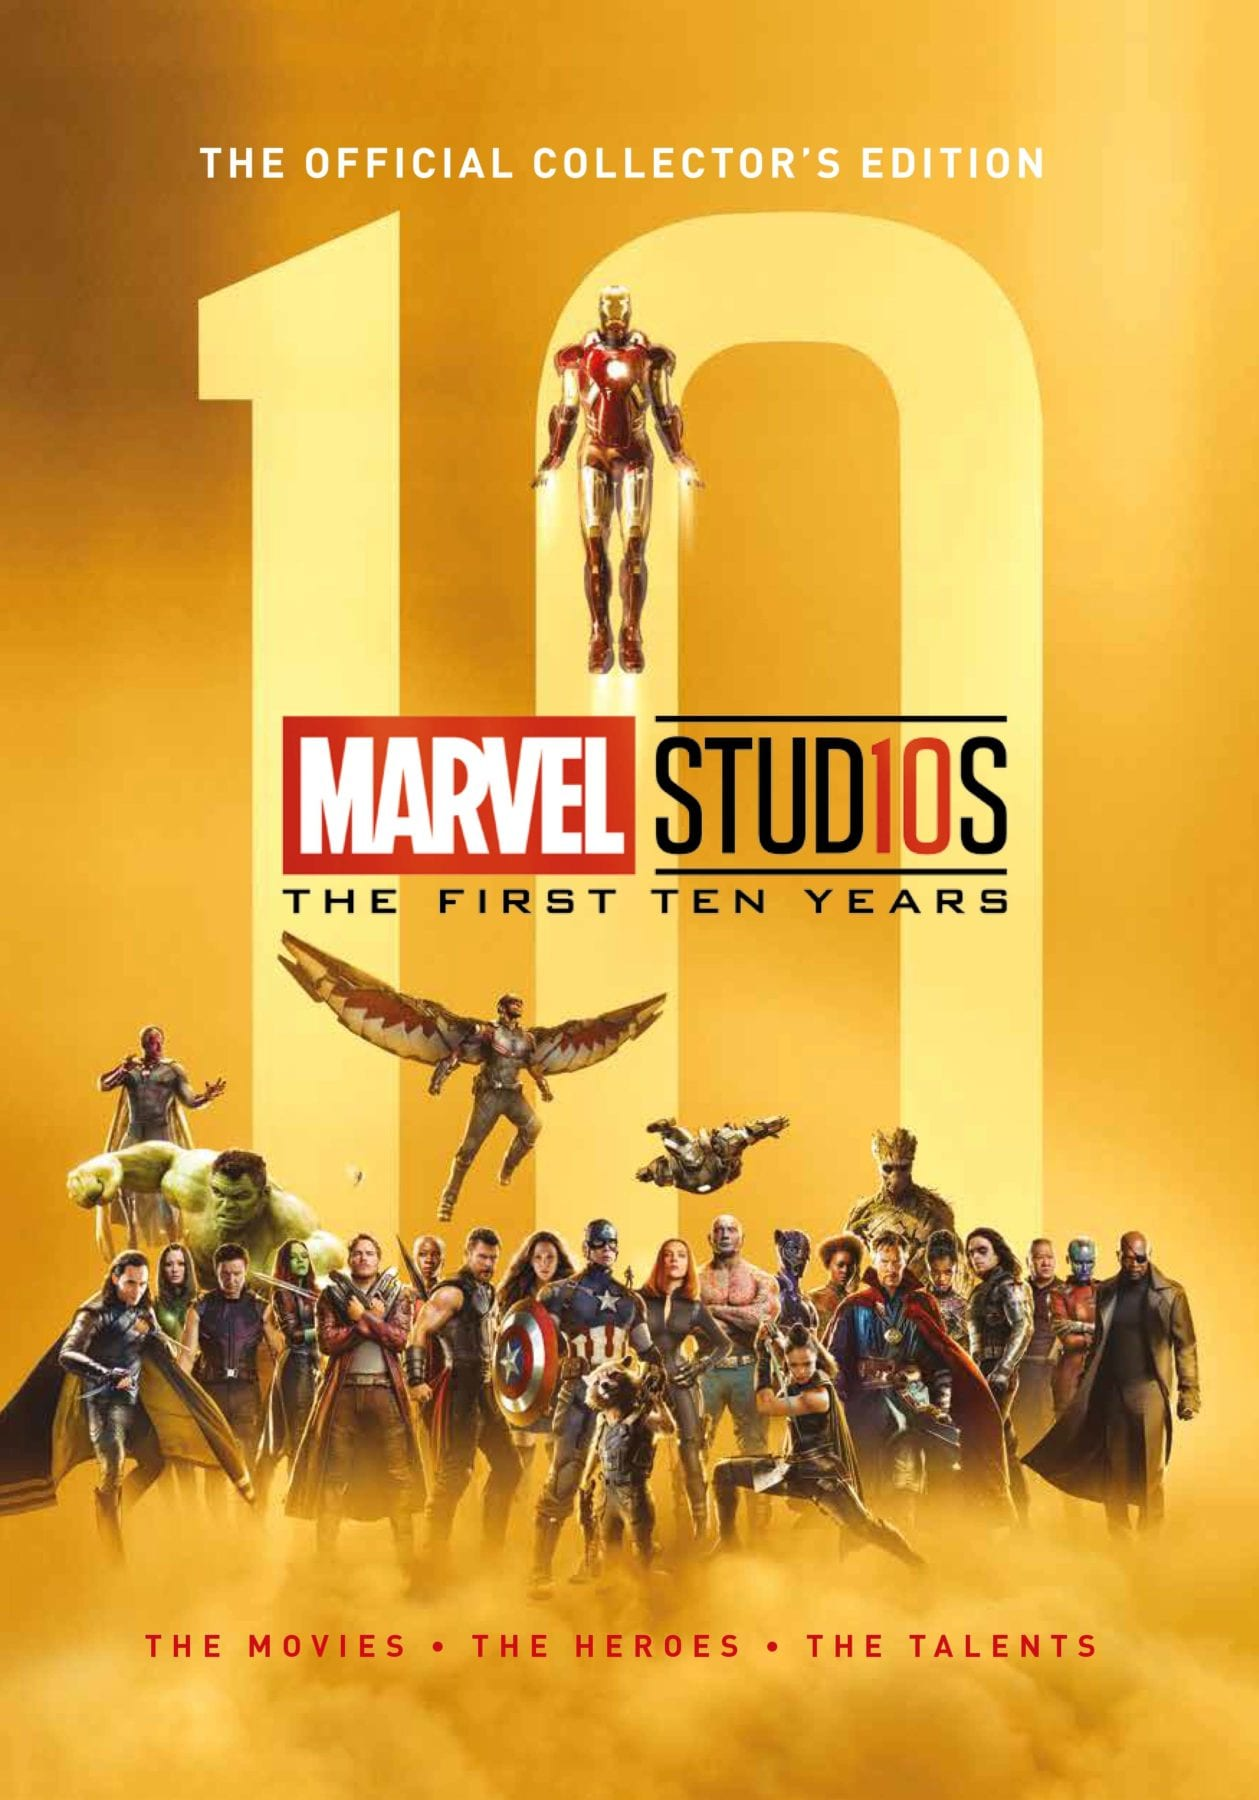 The 10 Most Beautiful Women In The World According To Science: Marvel Studios: The First 10 Years